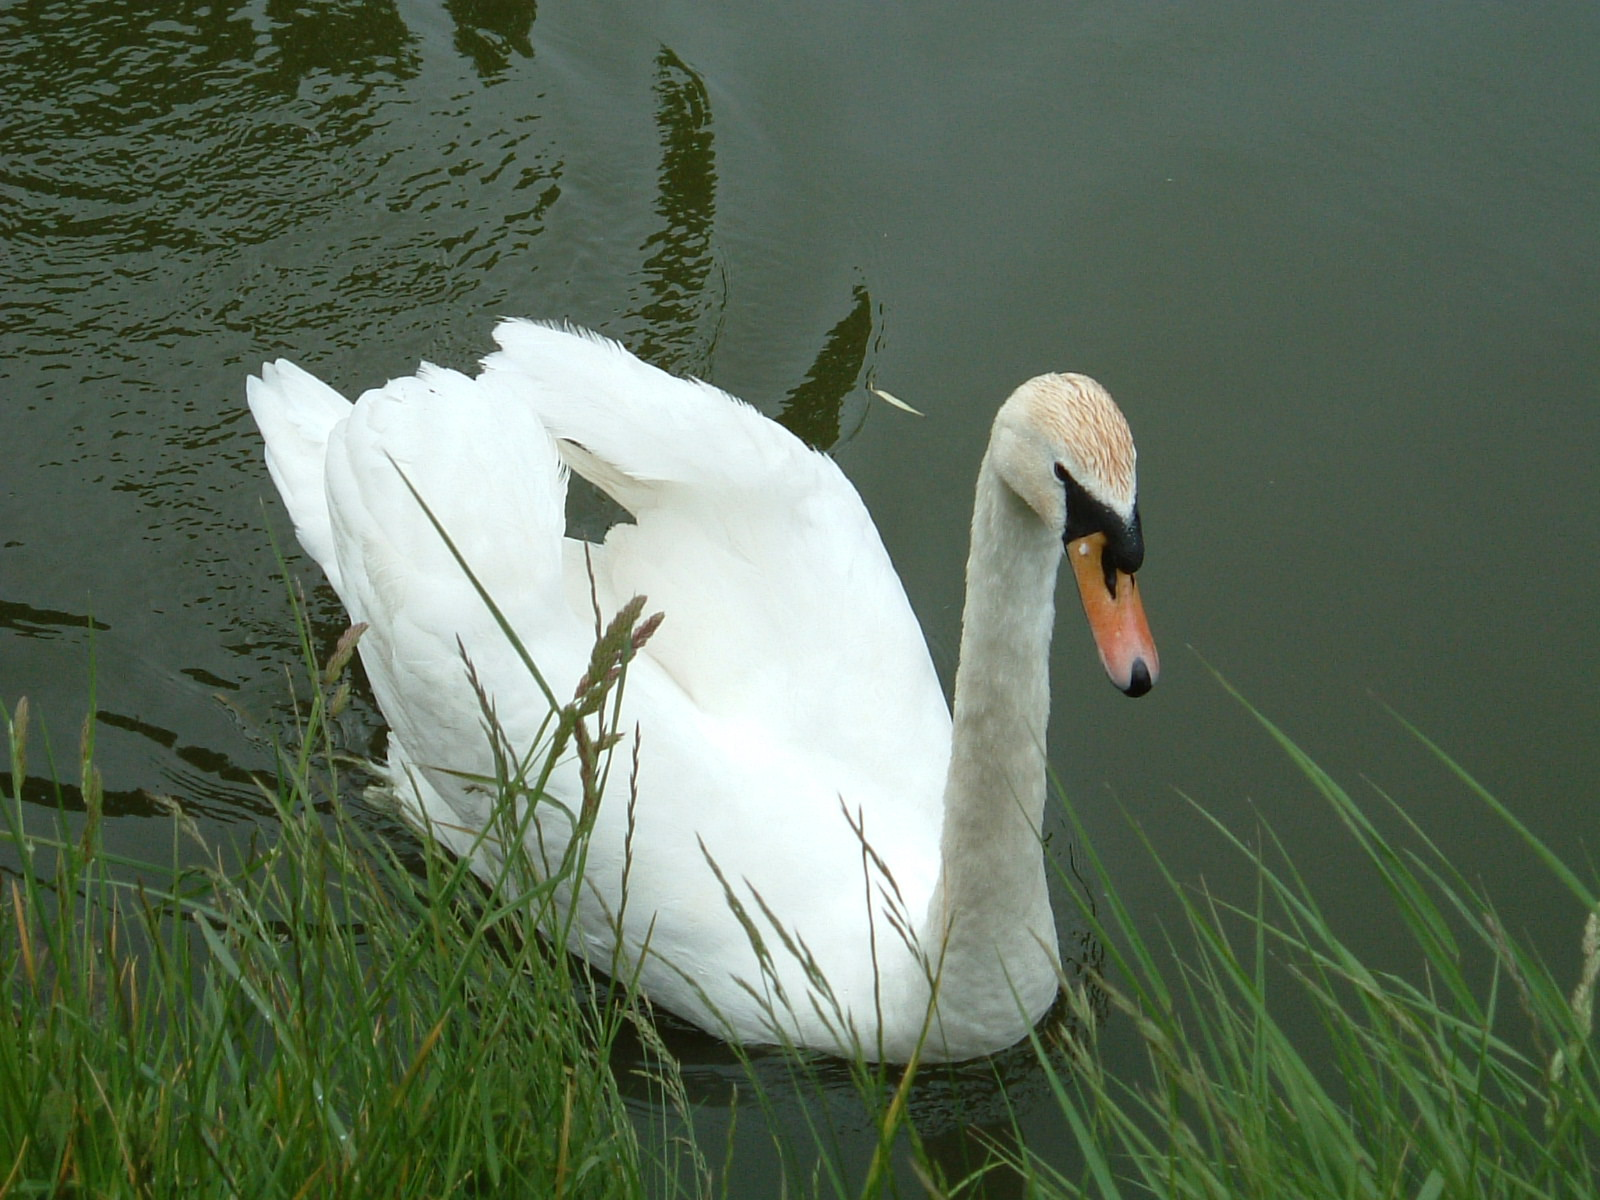 A swan on the Great Western Canal